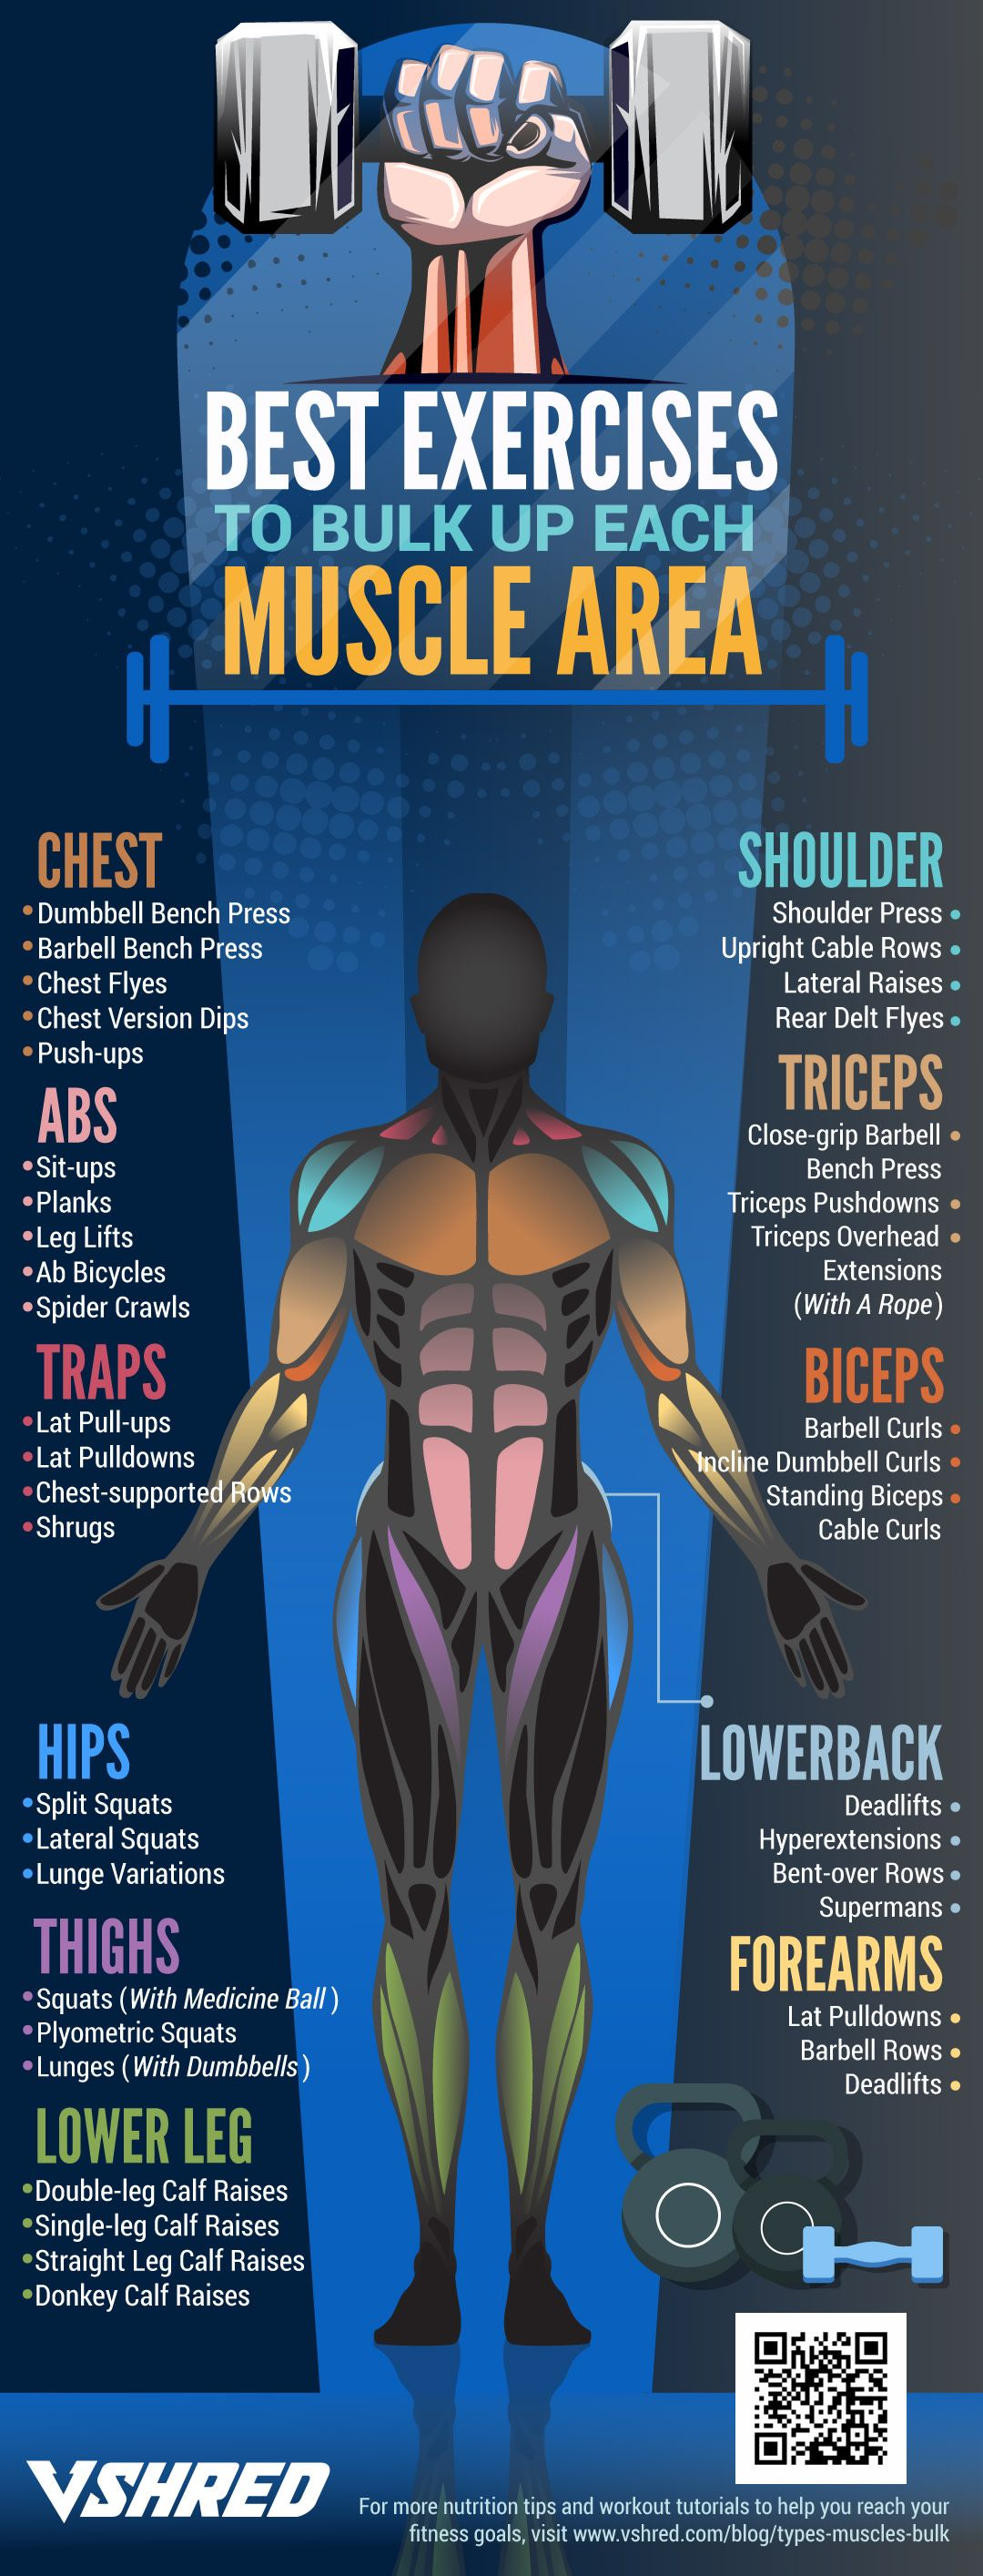 11 Types Of Muscles That You Can Bulk Up Which Types Of Muscles Would You Like To Bulk Health And Fitness Articles Fitness Articles Weight Training Workouts